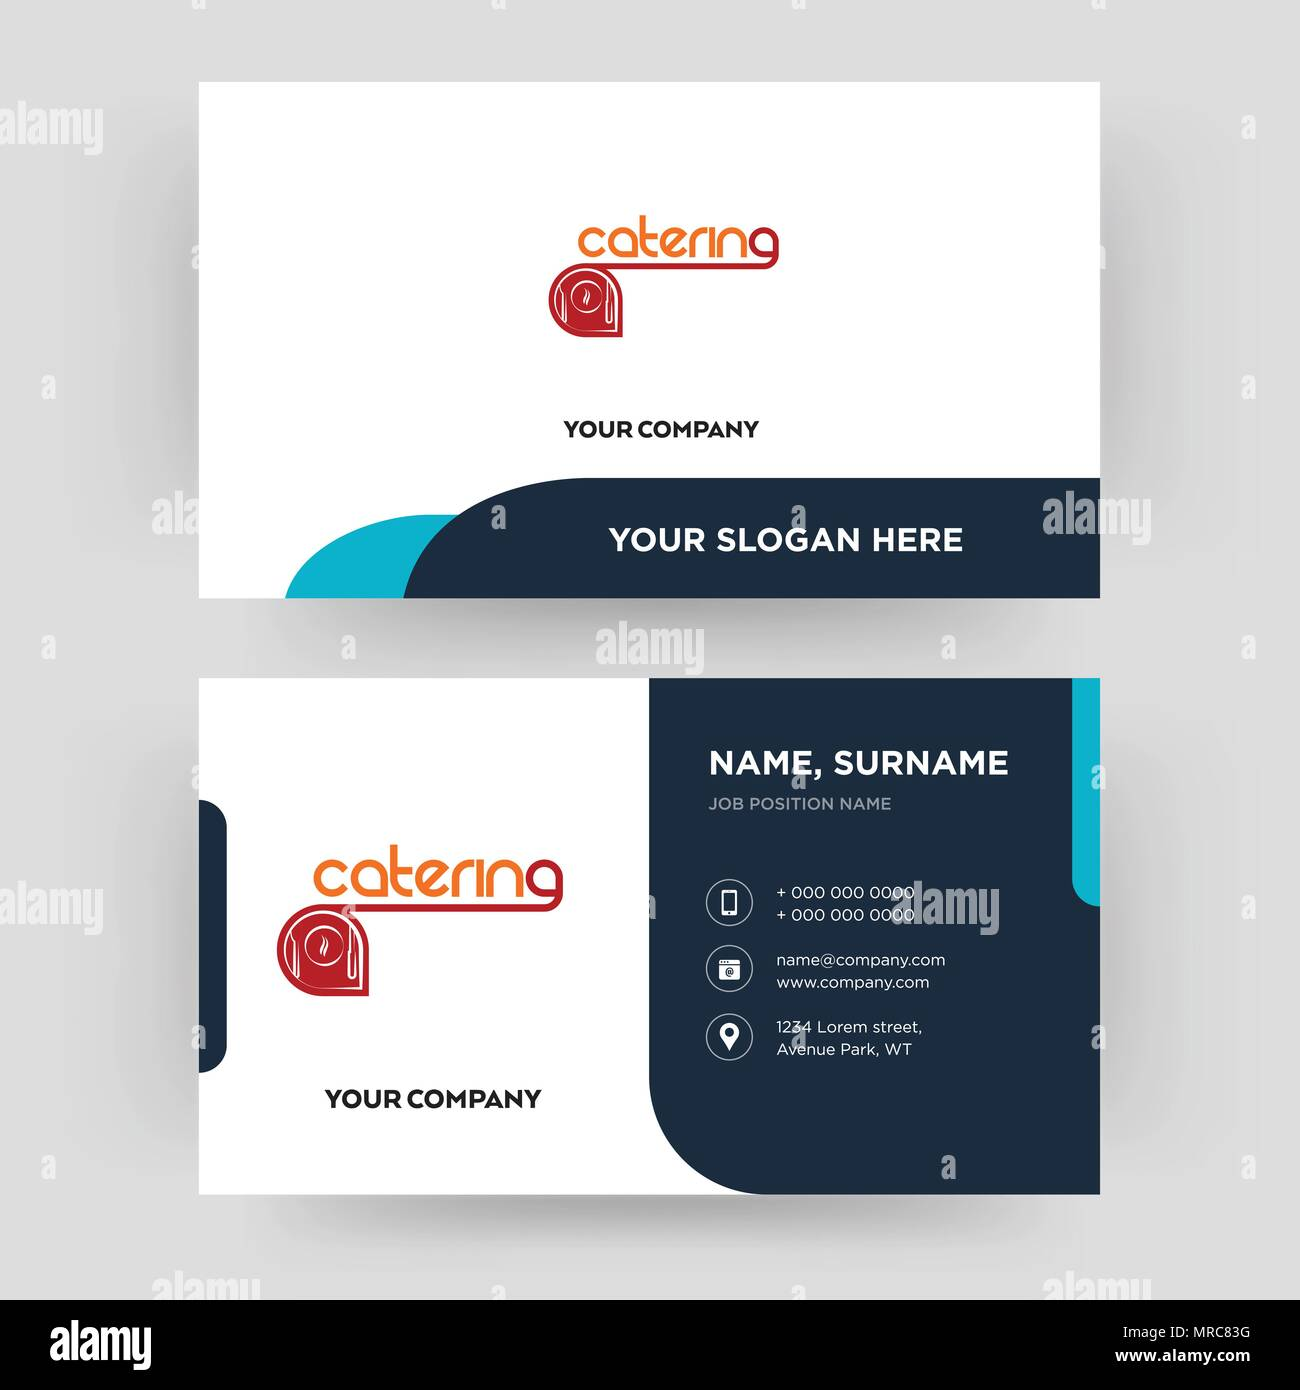 catering, business card design template, Visiting for your company ...